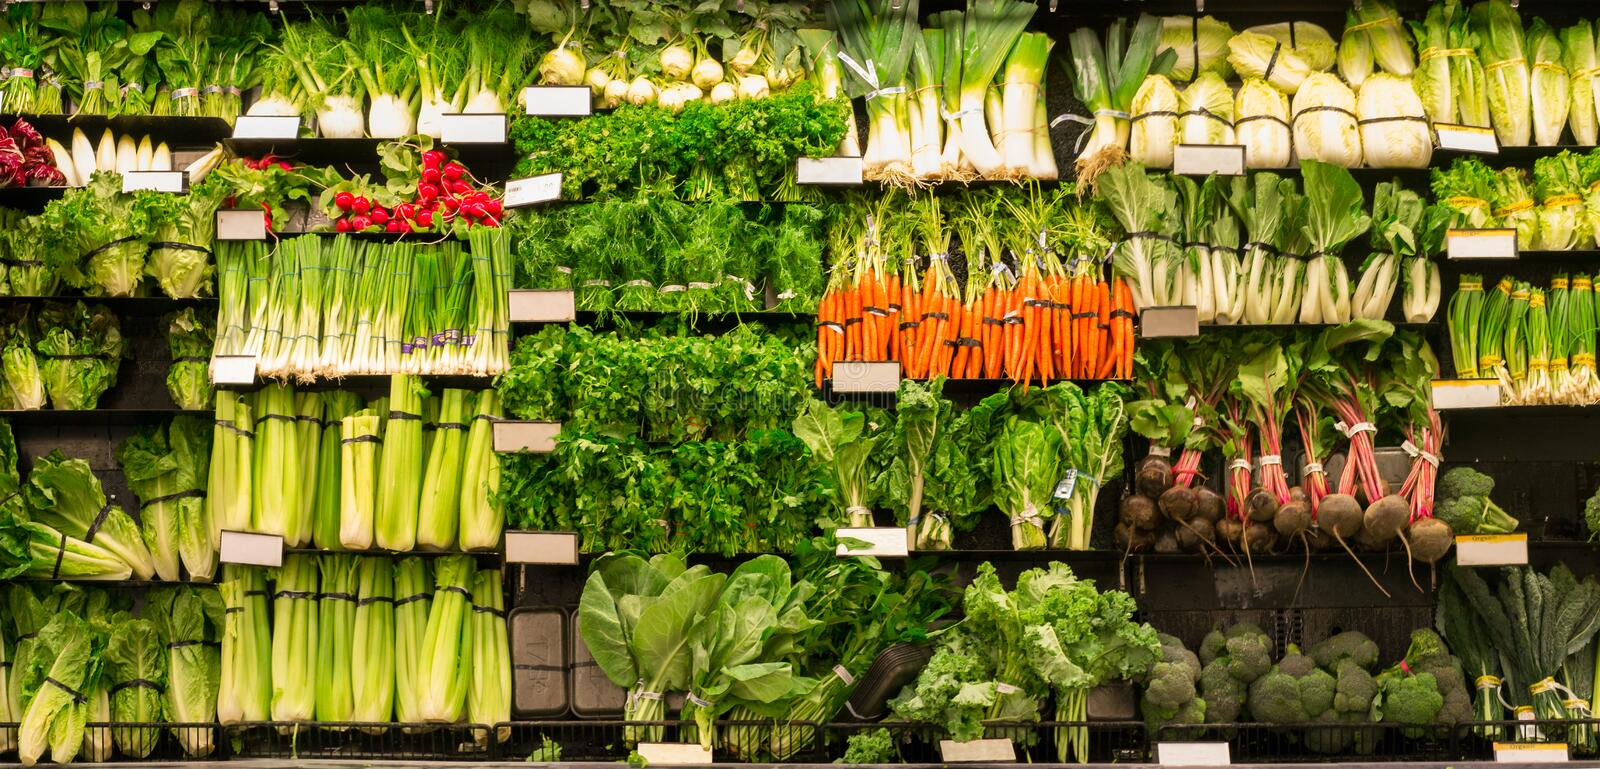 Wall of vegetables. An entire wall of many different kinds of vegetables for sale stock photography